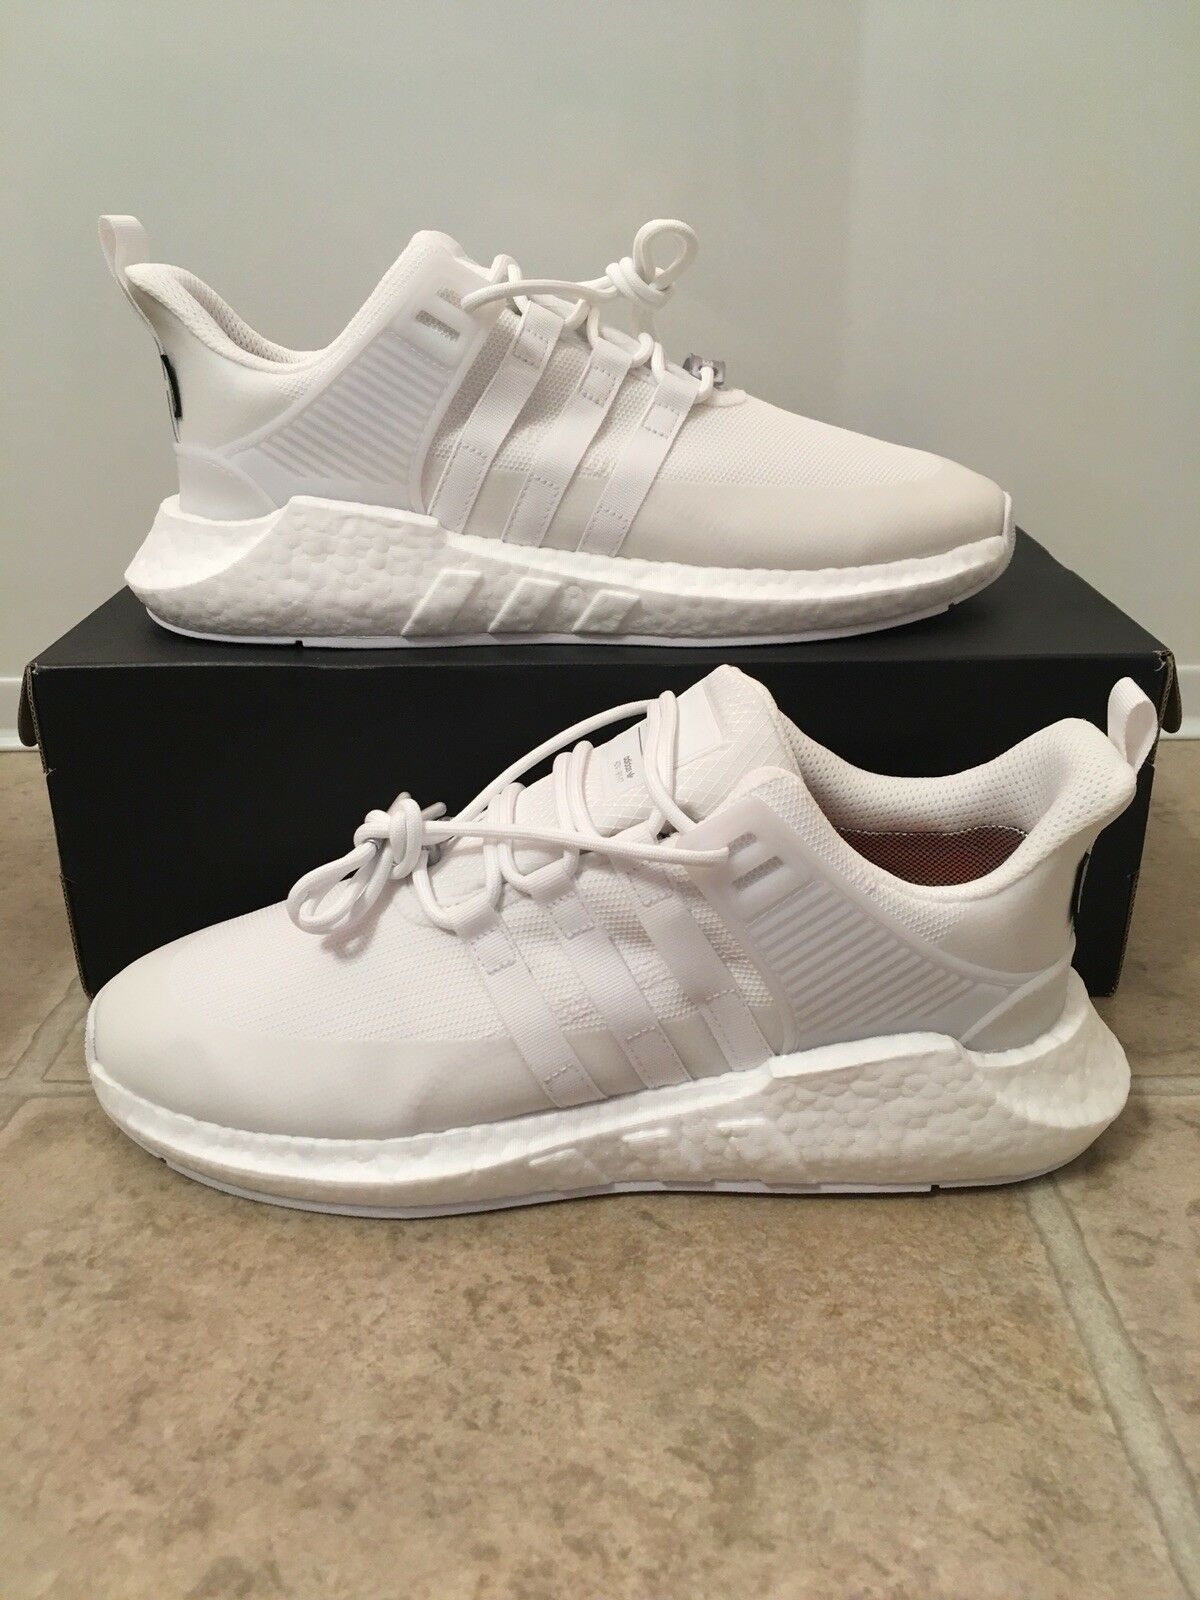 Adidas EQT Support GTX Terrex Imperméable Ultra Boost DB1444 Blanc Taille 11